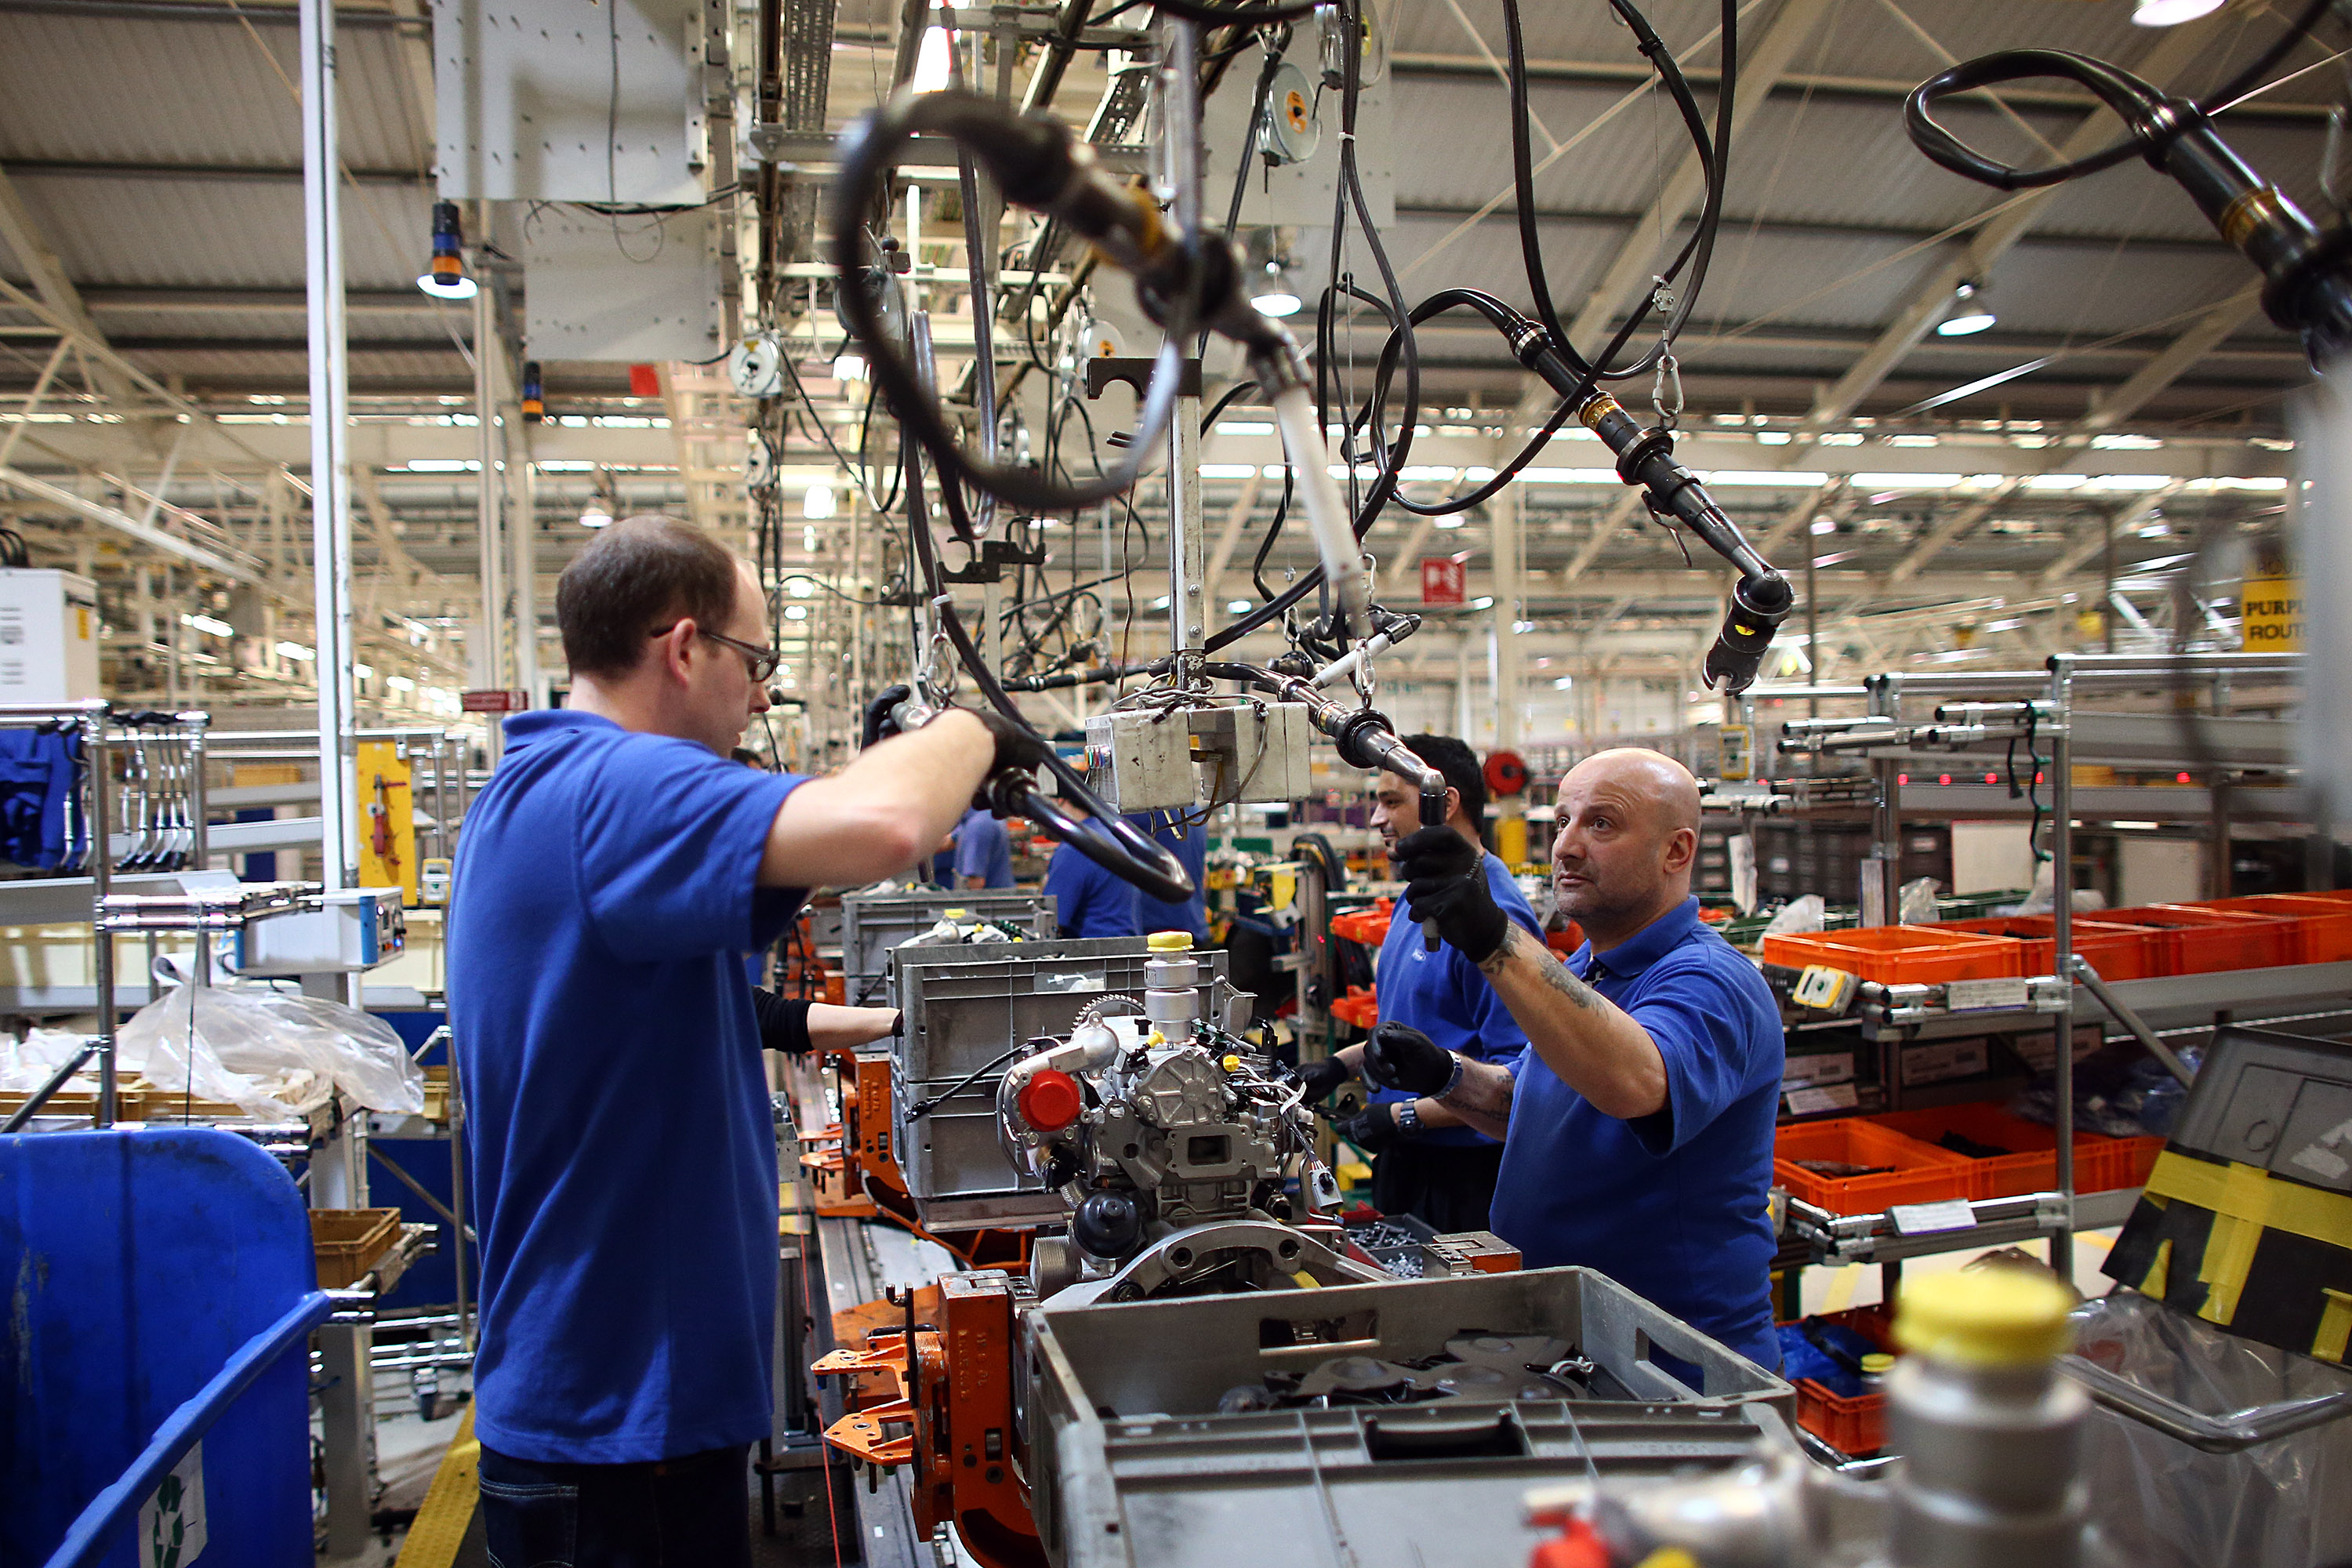 An employee works on an engine production line at a Ford factory on January 13, 2015 in Dagenham, England. Originally opened in 1931, the Ford factory has unveiled a state of the art GBP475 million production line that will start manufacturing the new low-emission, Ford diesel engines from this November this will generate more than 300 new jobs, Ford currently employs around 3000 at the plant in Dagenham. (Photo by Carl Court/Getty Images)